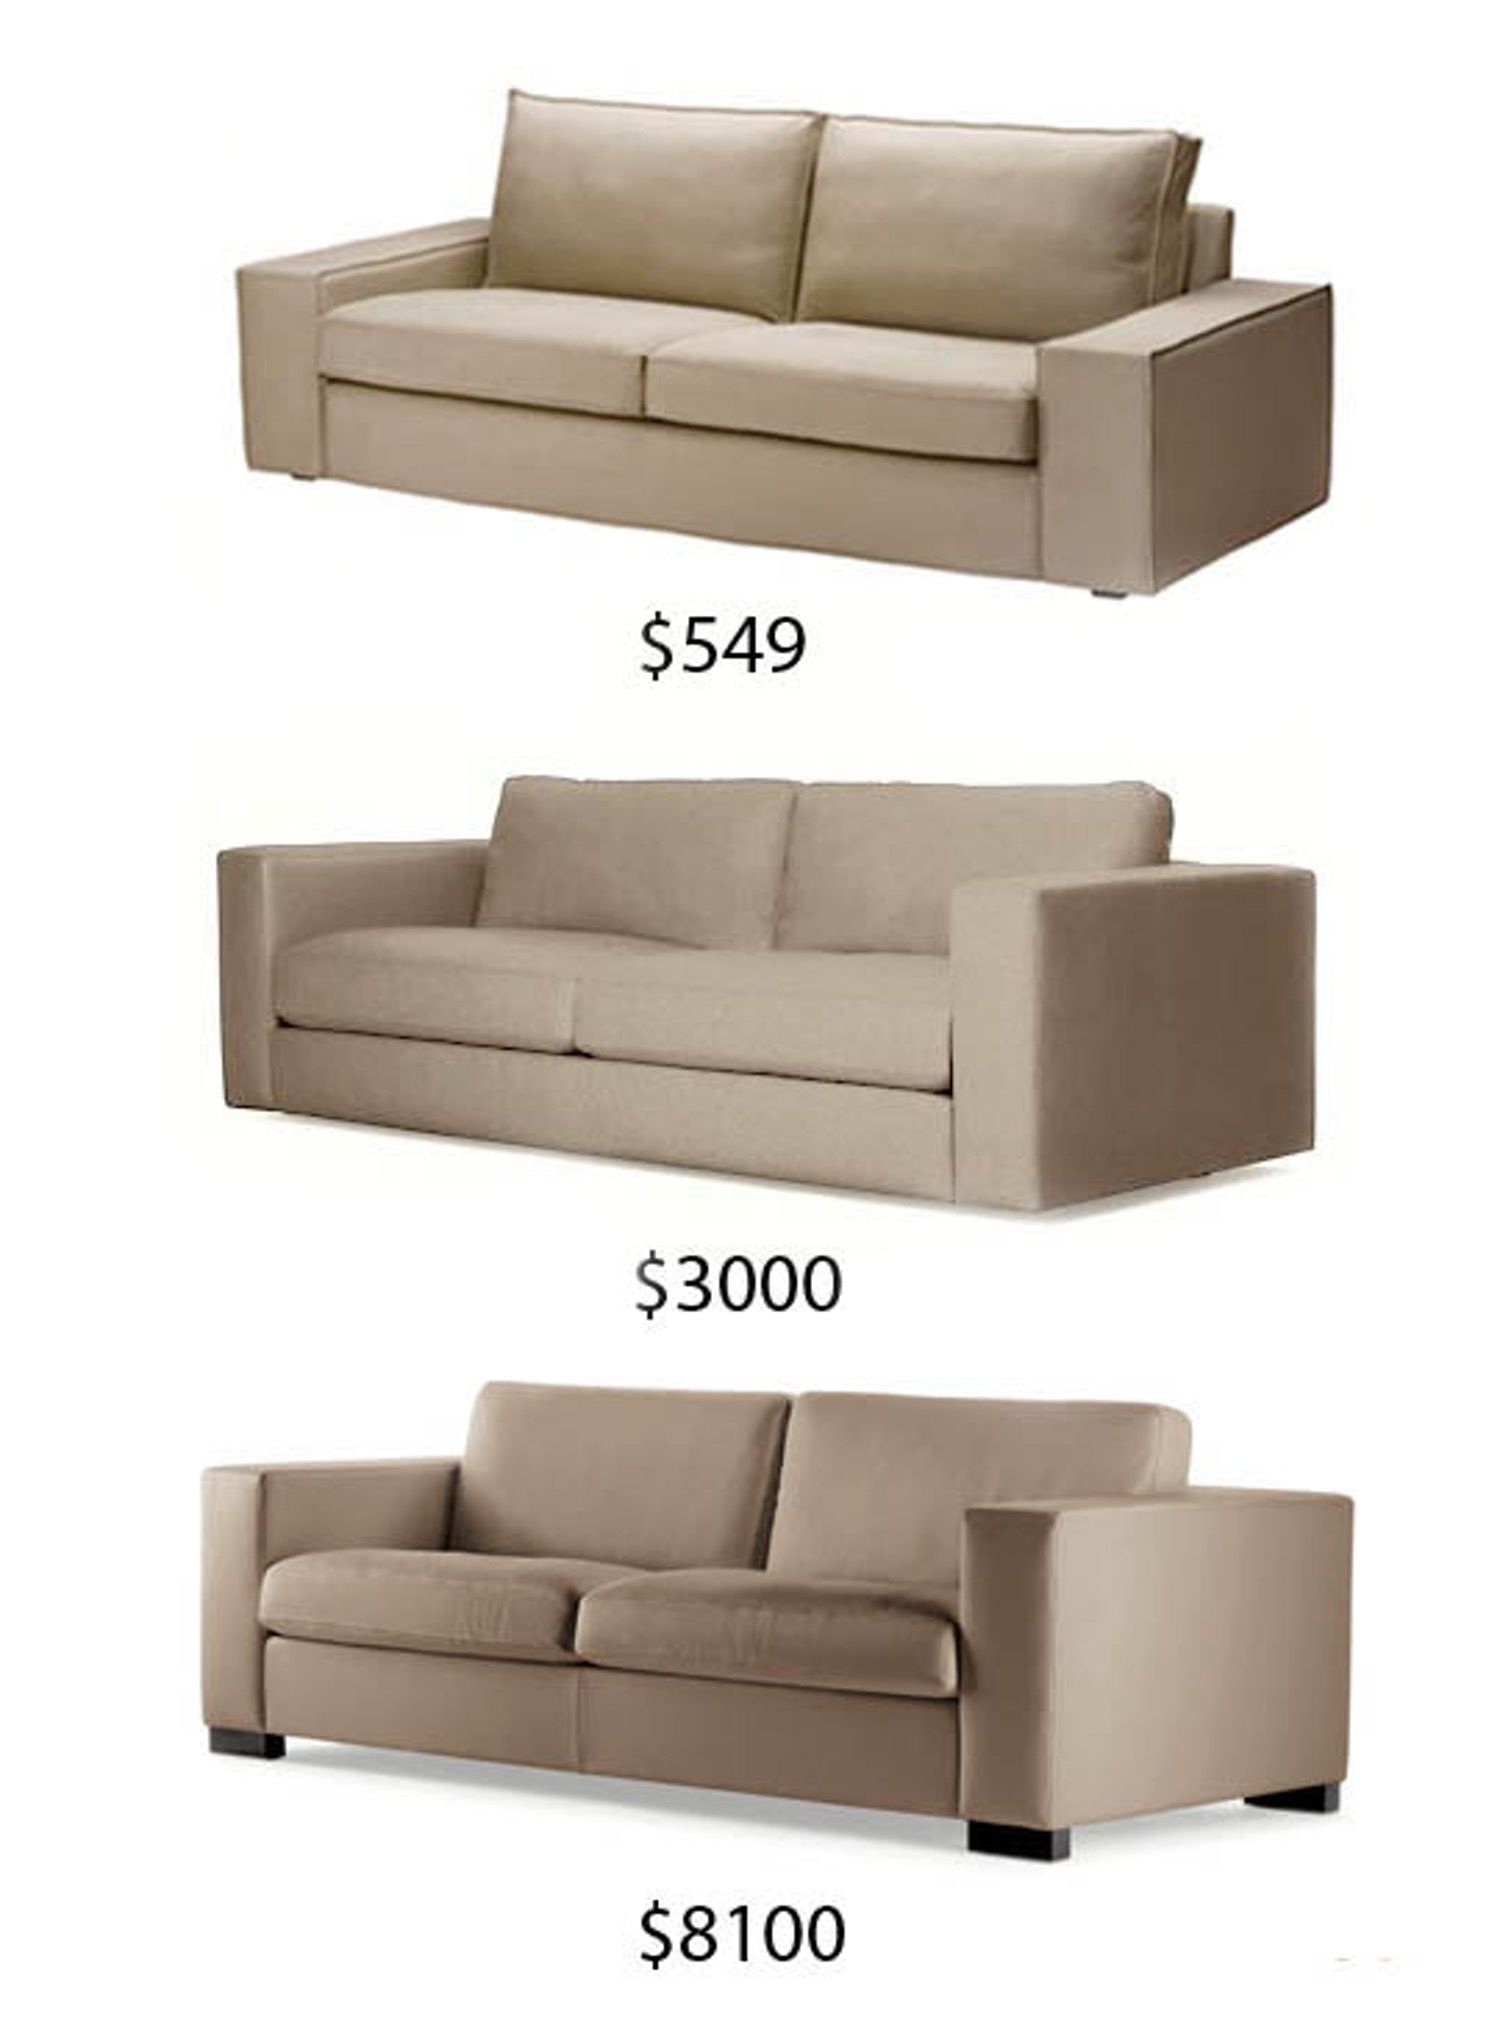 Difference Between Couch And Sofa